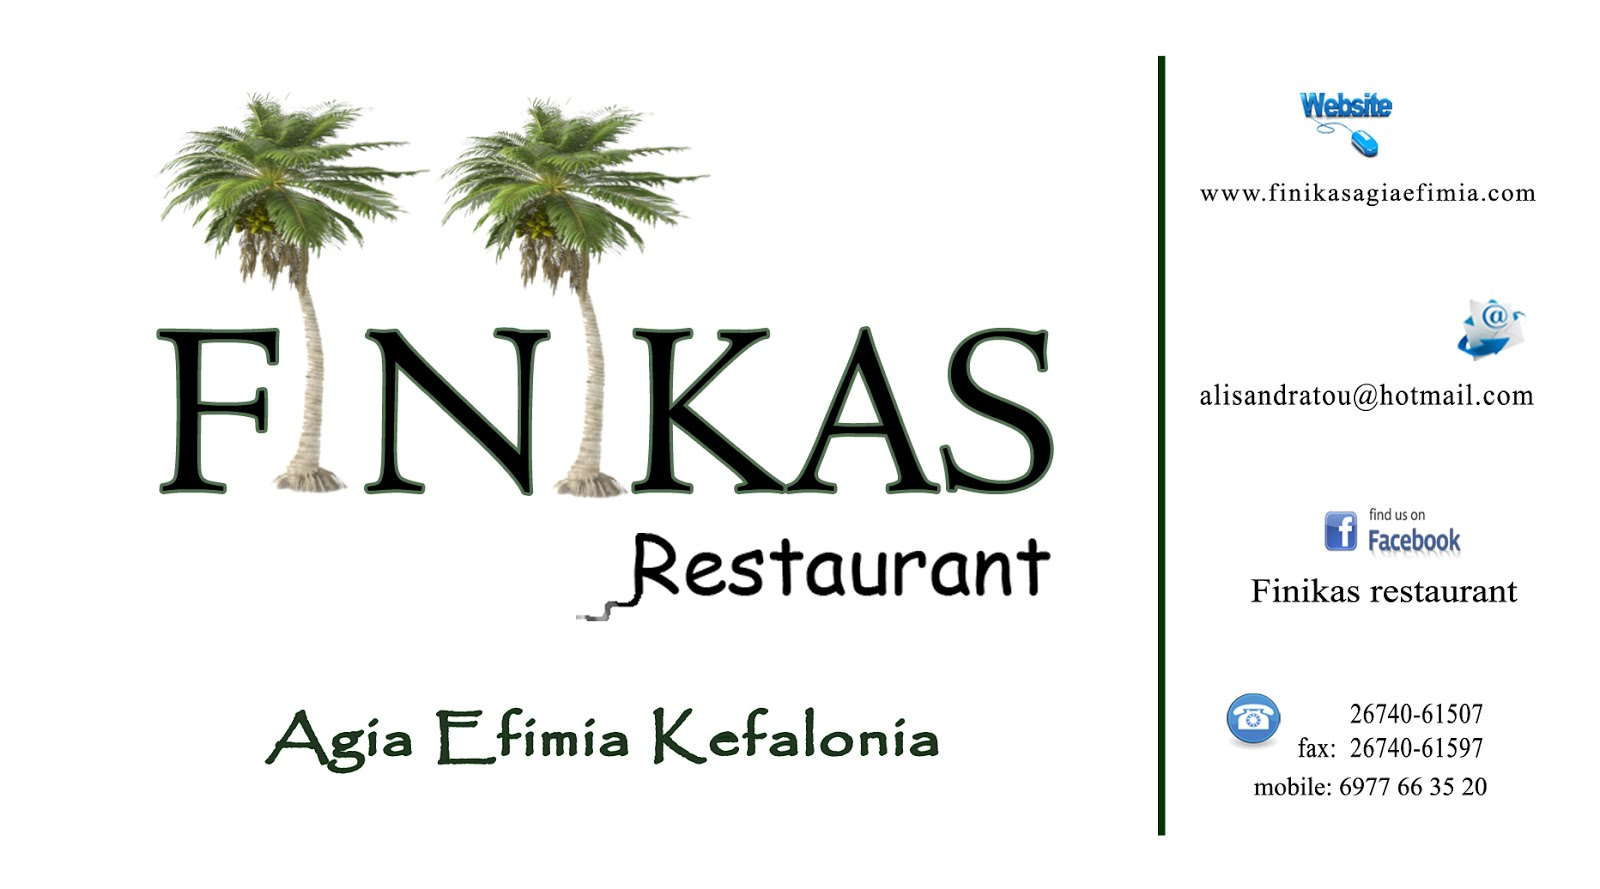 FINIKAS RESTAURANT